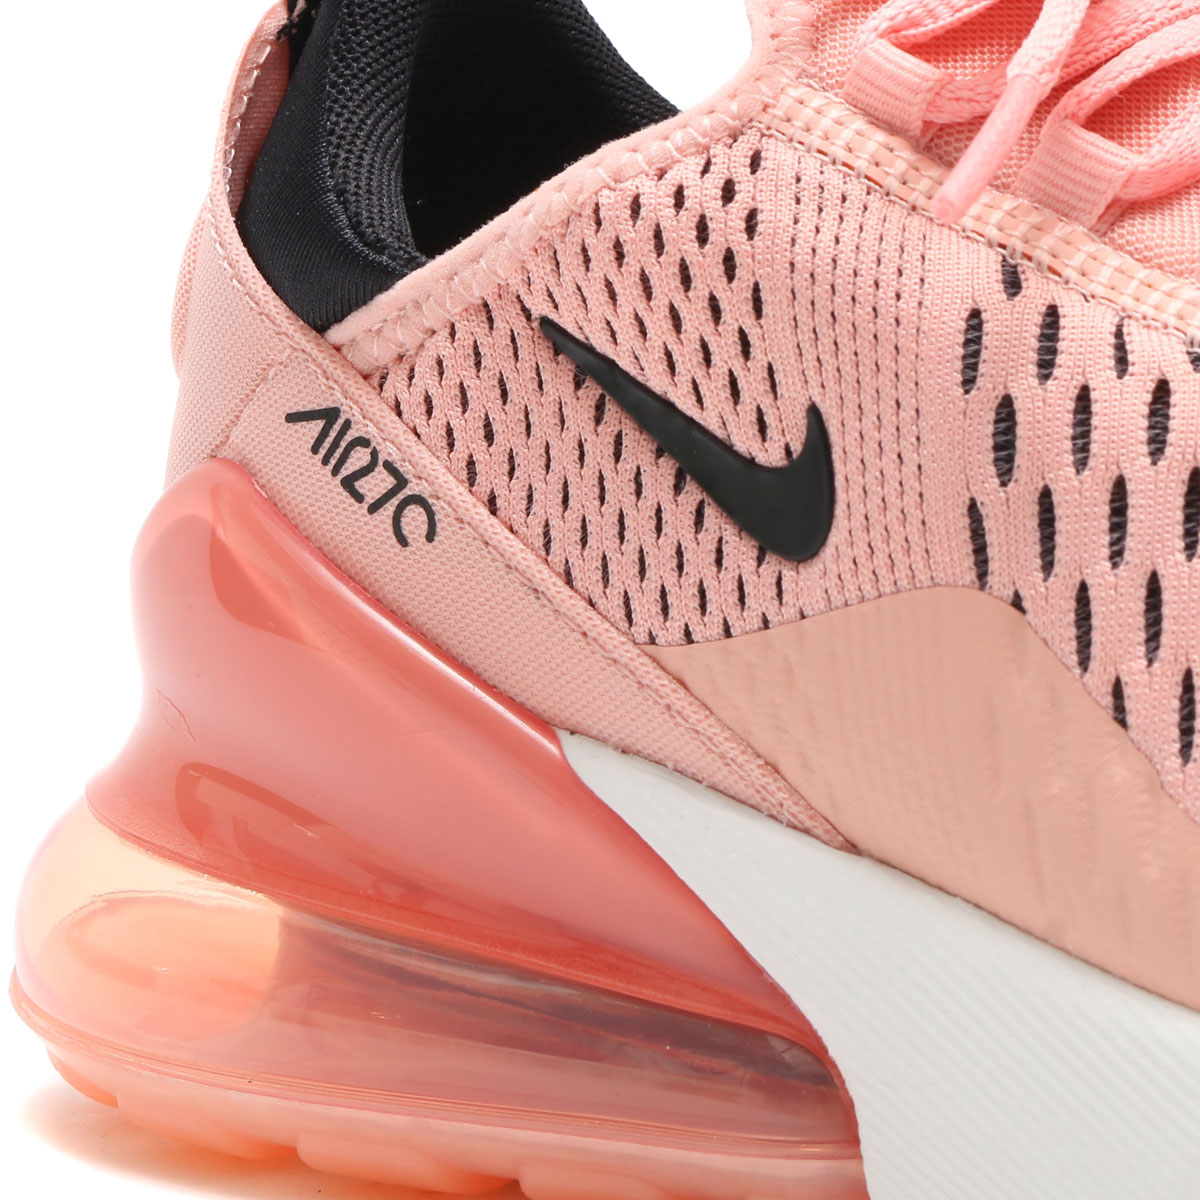 New Nike Air Max 270 Coral Stardust size 4,5